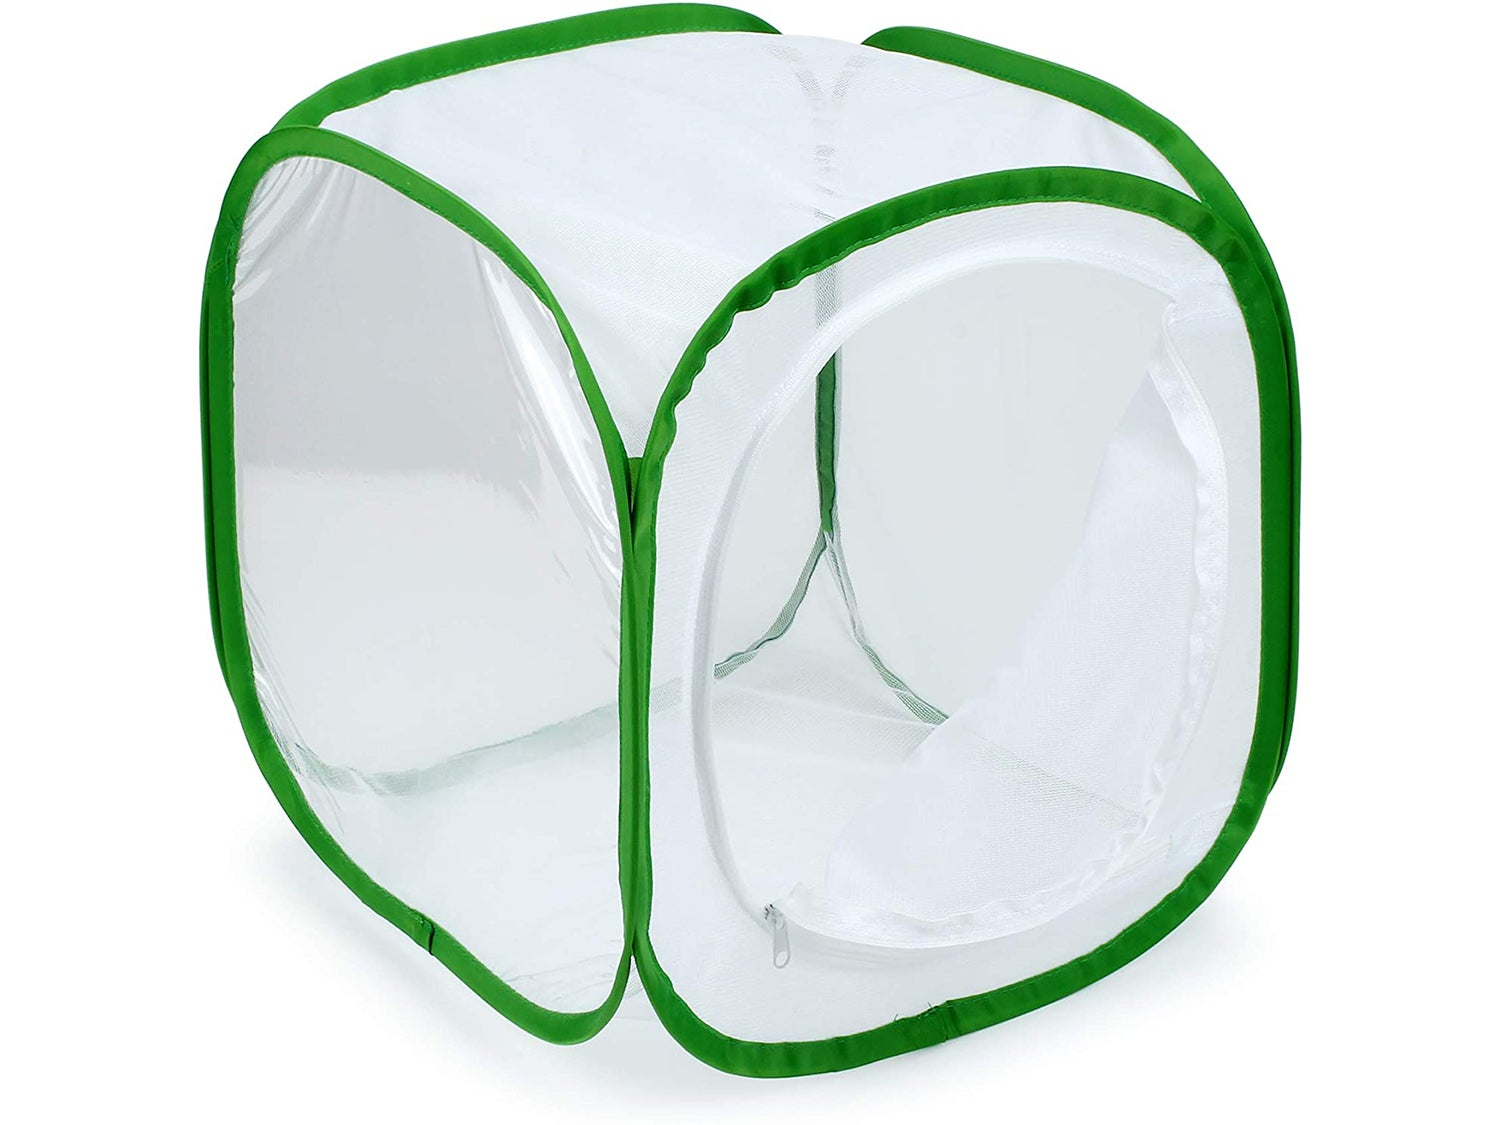 RESTCLOUD Insect and Butterfly Habitat Cage Terrarium Pop-up 12 X 12 X 12 Inches